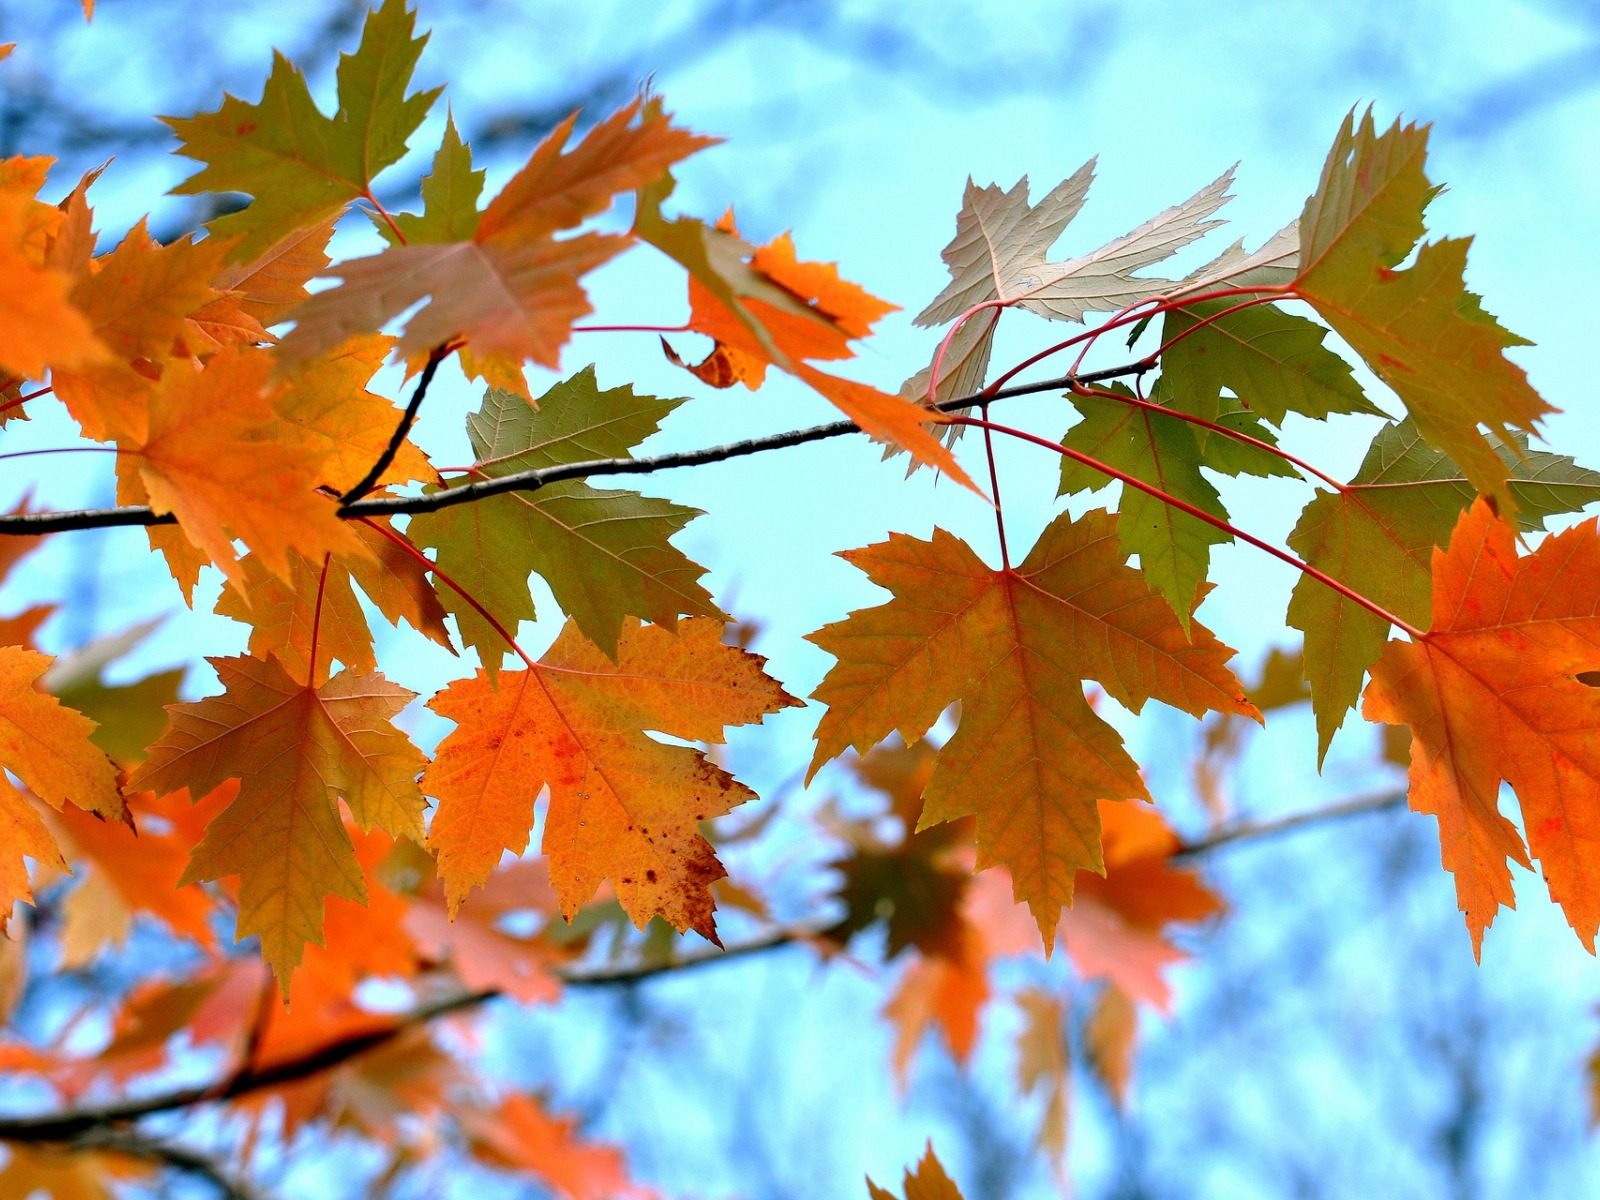 Maple Leaves Branches-High Quality HD Wallpaper - 1600x1200 wallpaper download